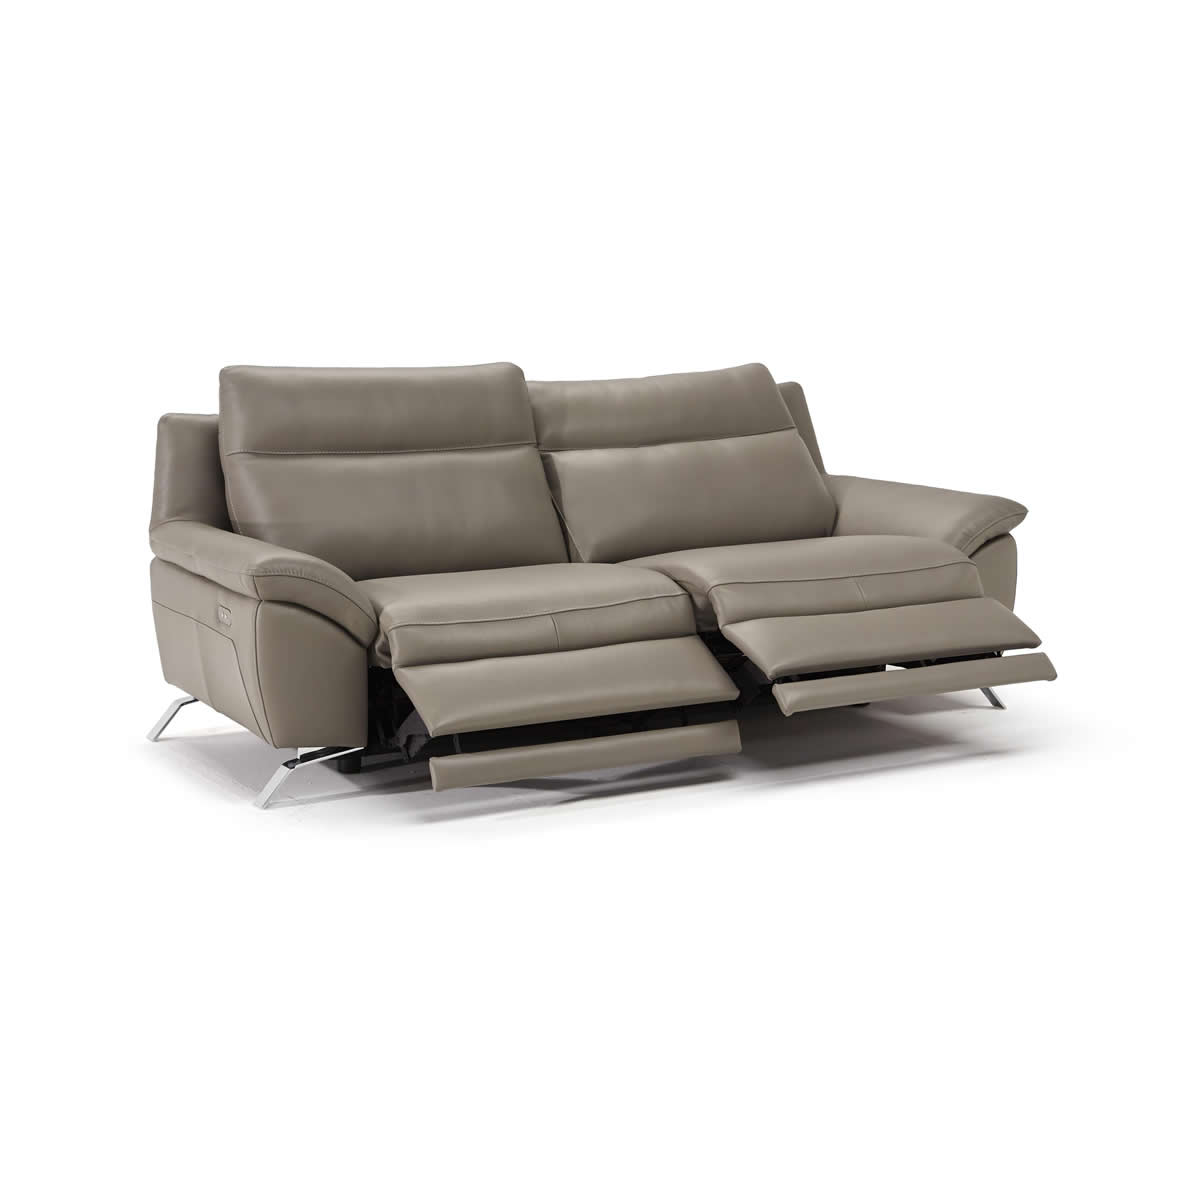 leather sofa furniture stores nyc how to make a camper bed natuzzi editions orlando with two recliners living